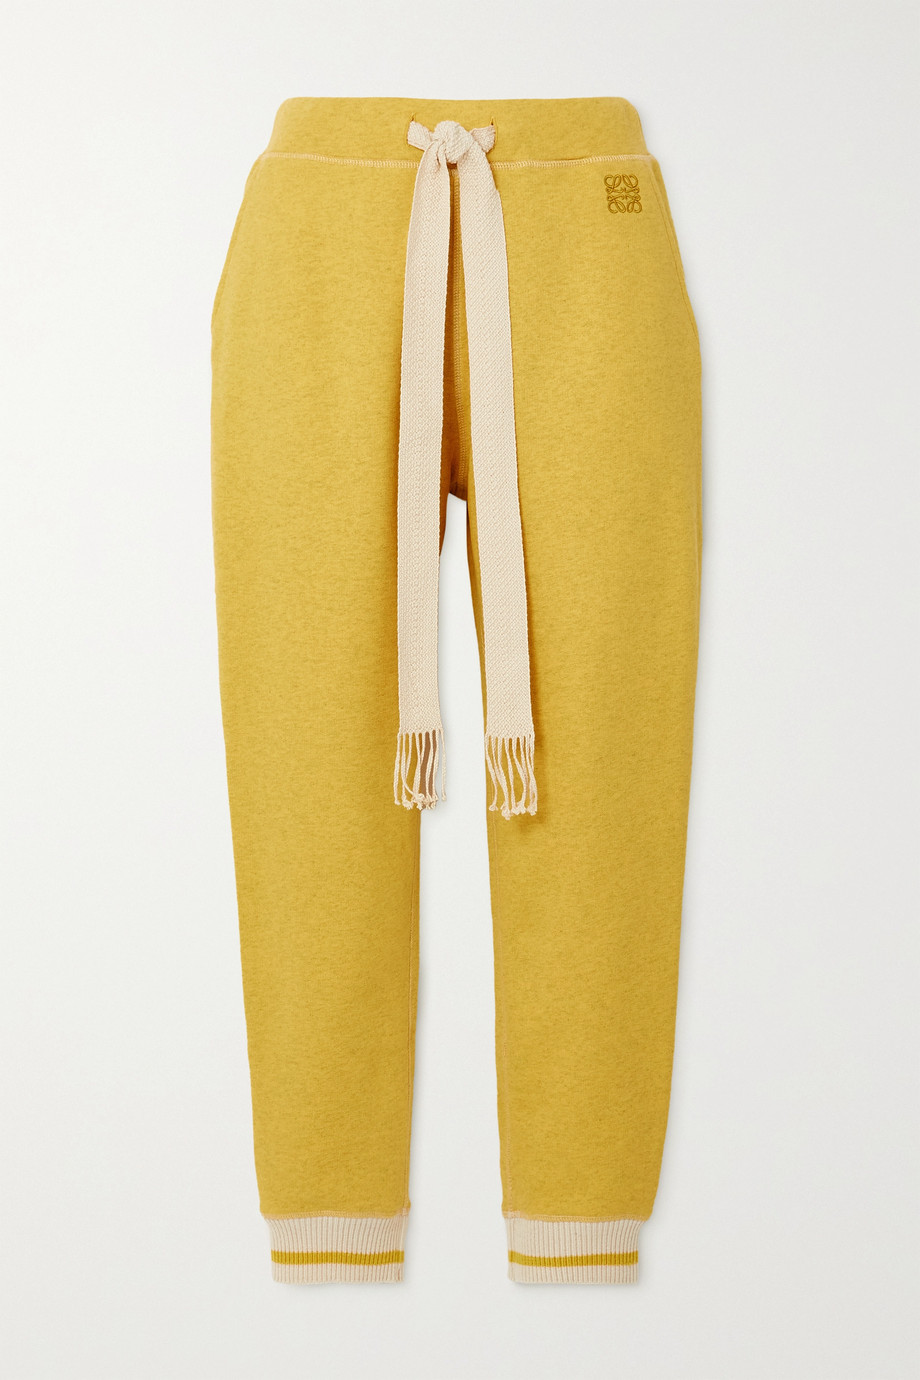 LOEWE Striped cotton-jersey track pants